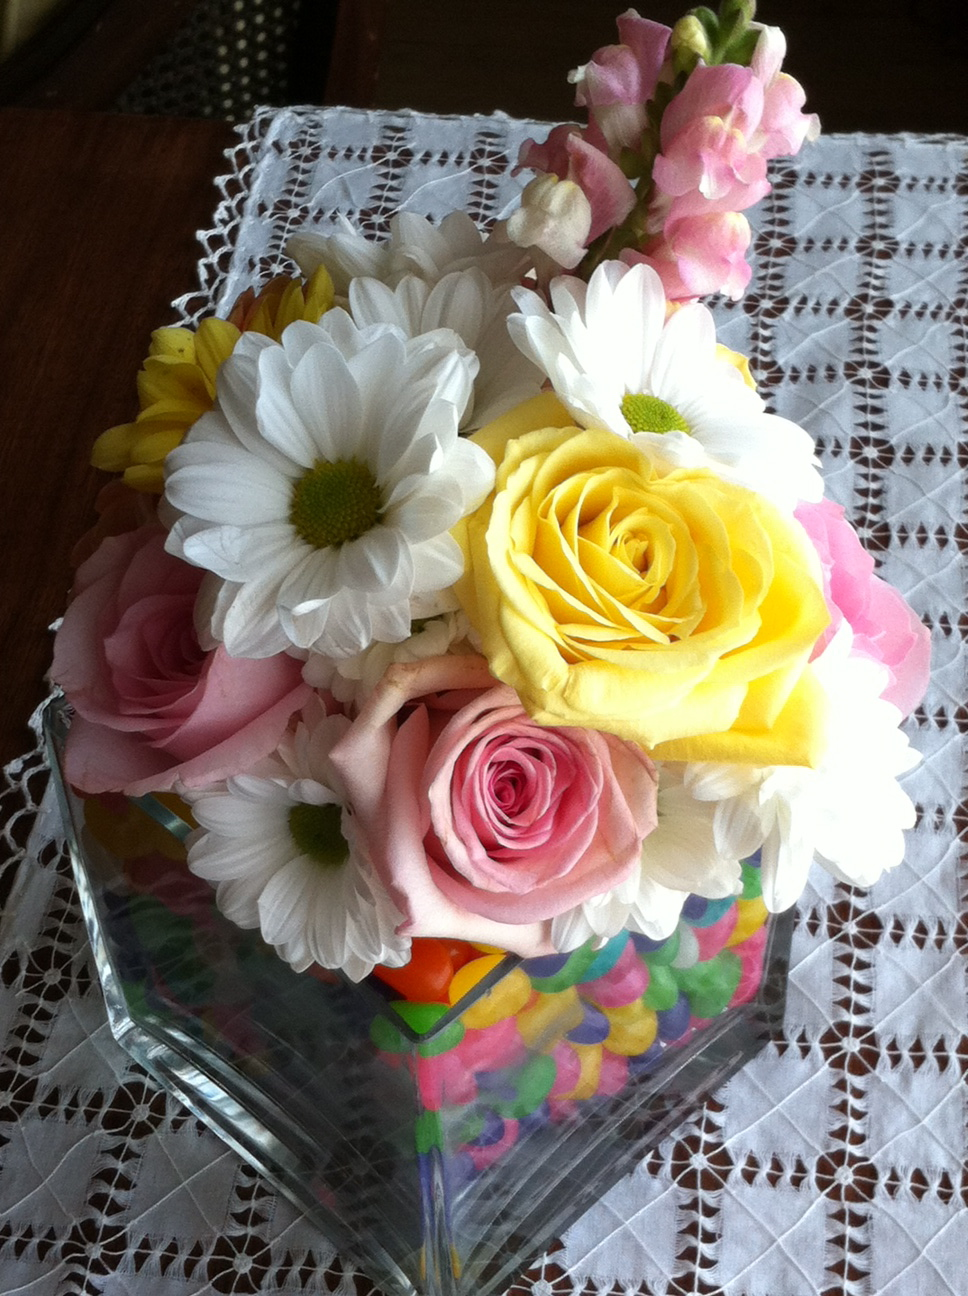 An Easter-Themed Arrangement